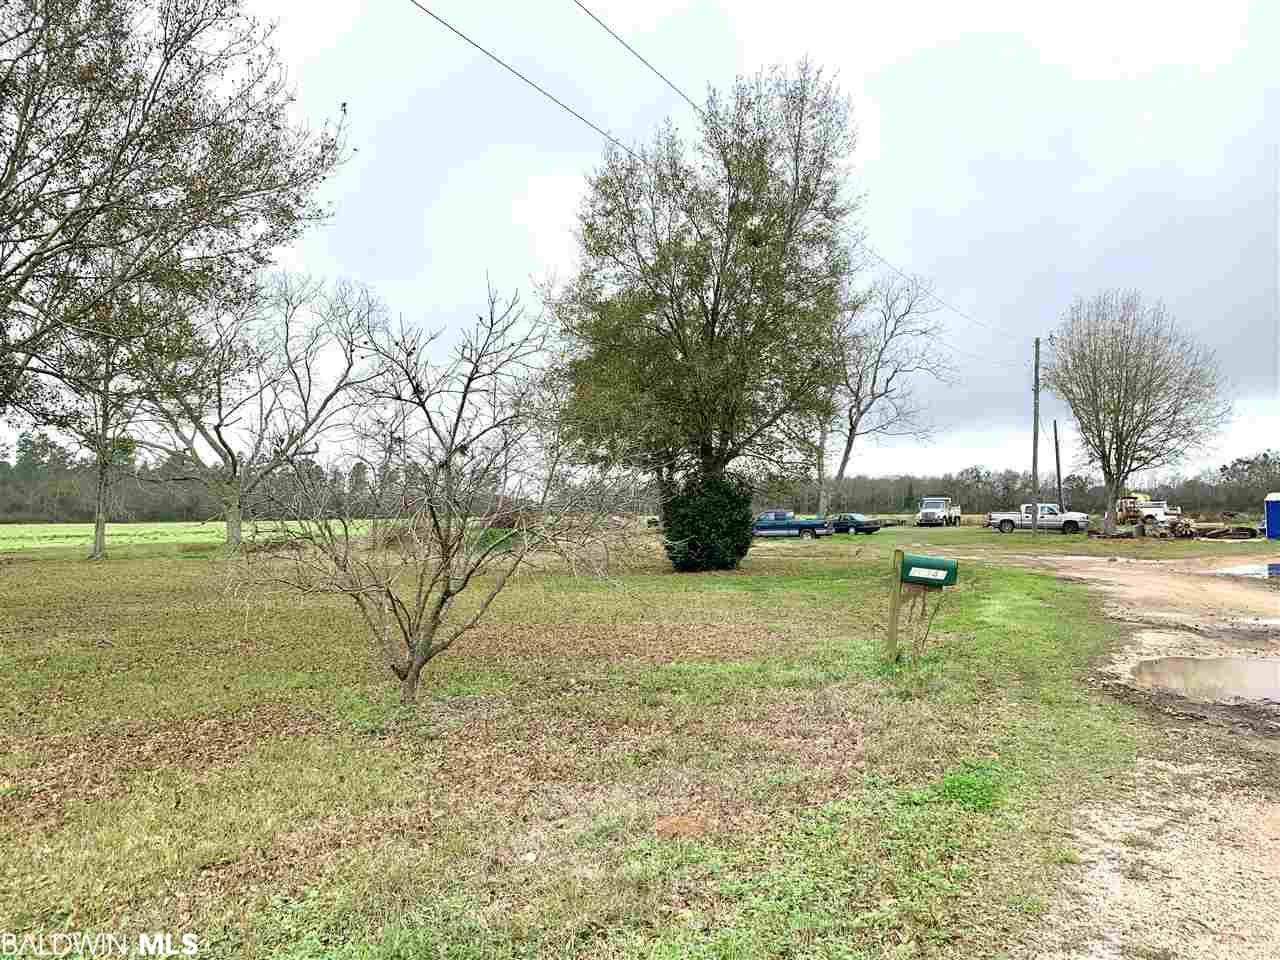 Great opportunity to own 3.0 acres currently Zoned B-1 in Loxley just off Hwy 59. Excellent income producing location, office site or general business. Currently used for repair and farm equipment business. Great location just 5 minutes to I-10 and 45 minutes to Gulf Beaches. Parcel has 363 feet along CR 55 just one block from Hwy 59. Centrally located between Mobile and Pensacola.